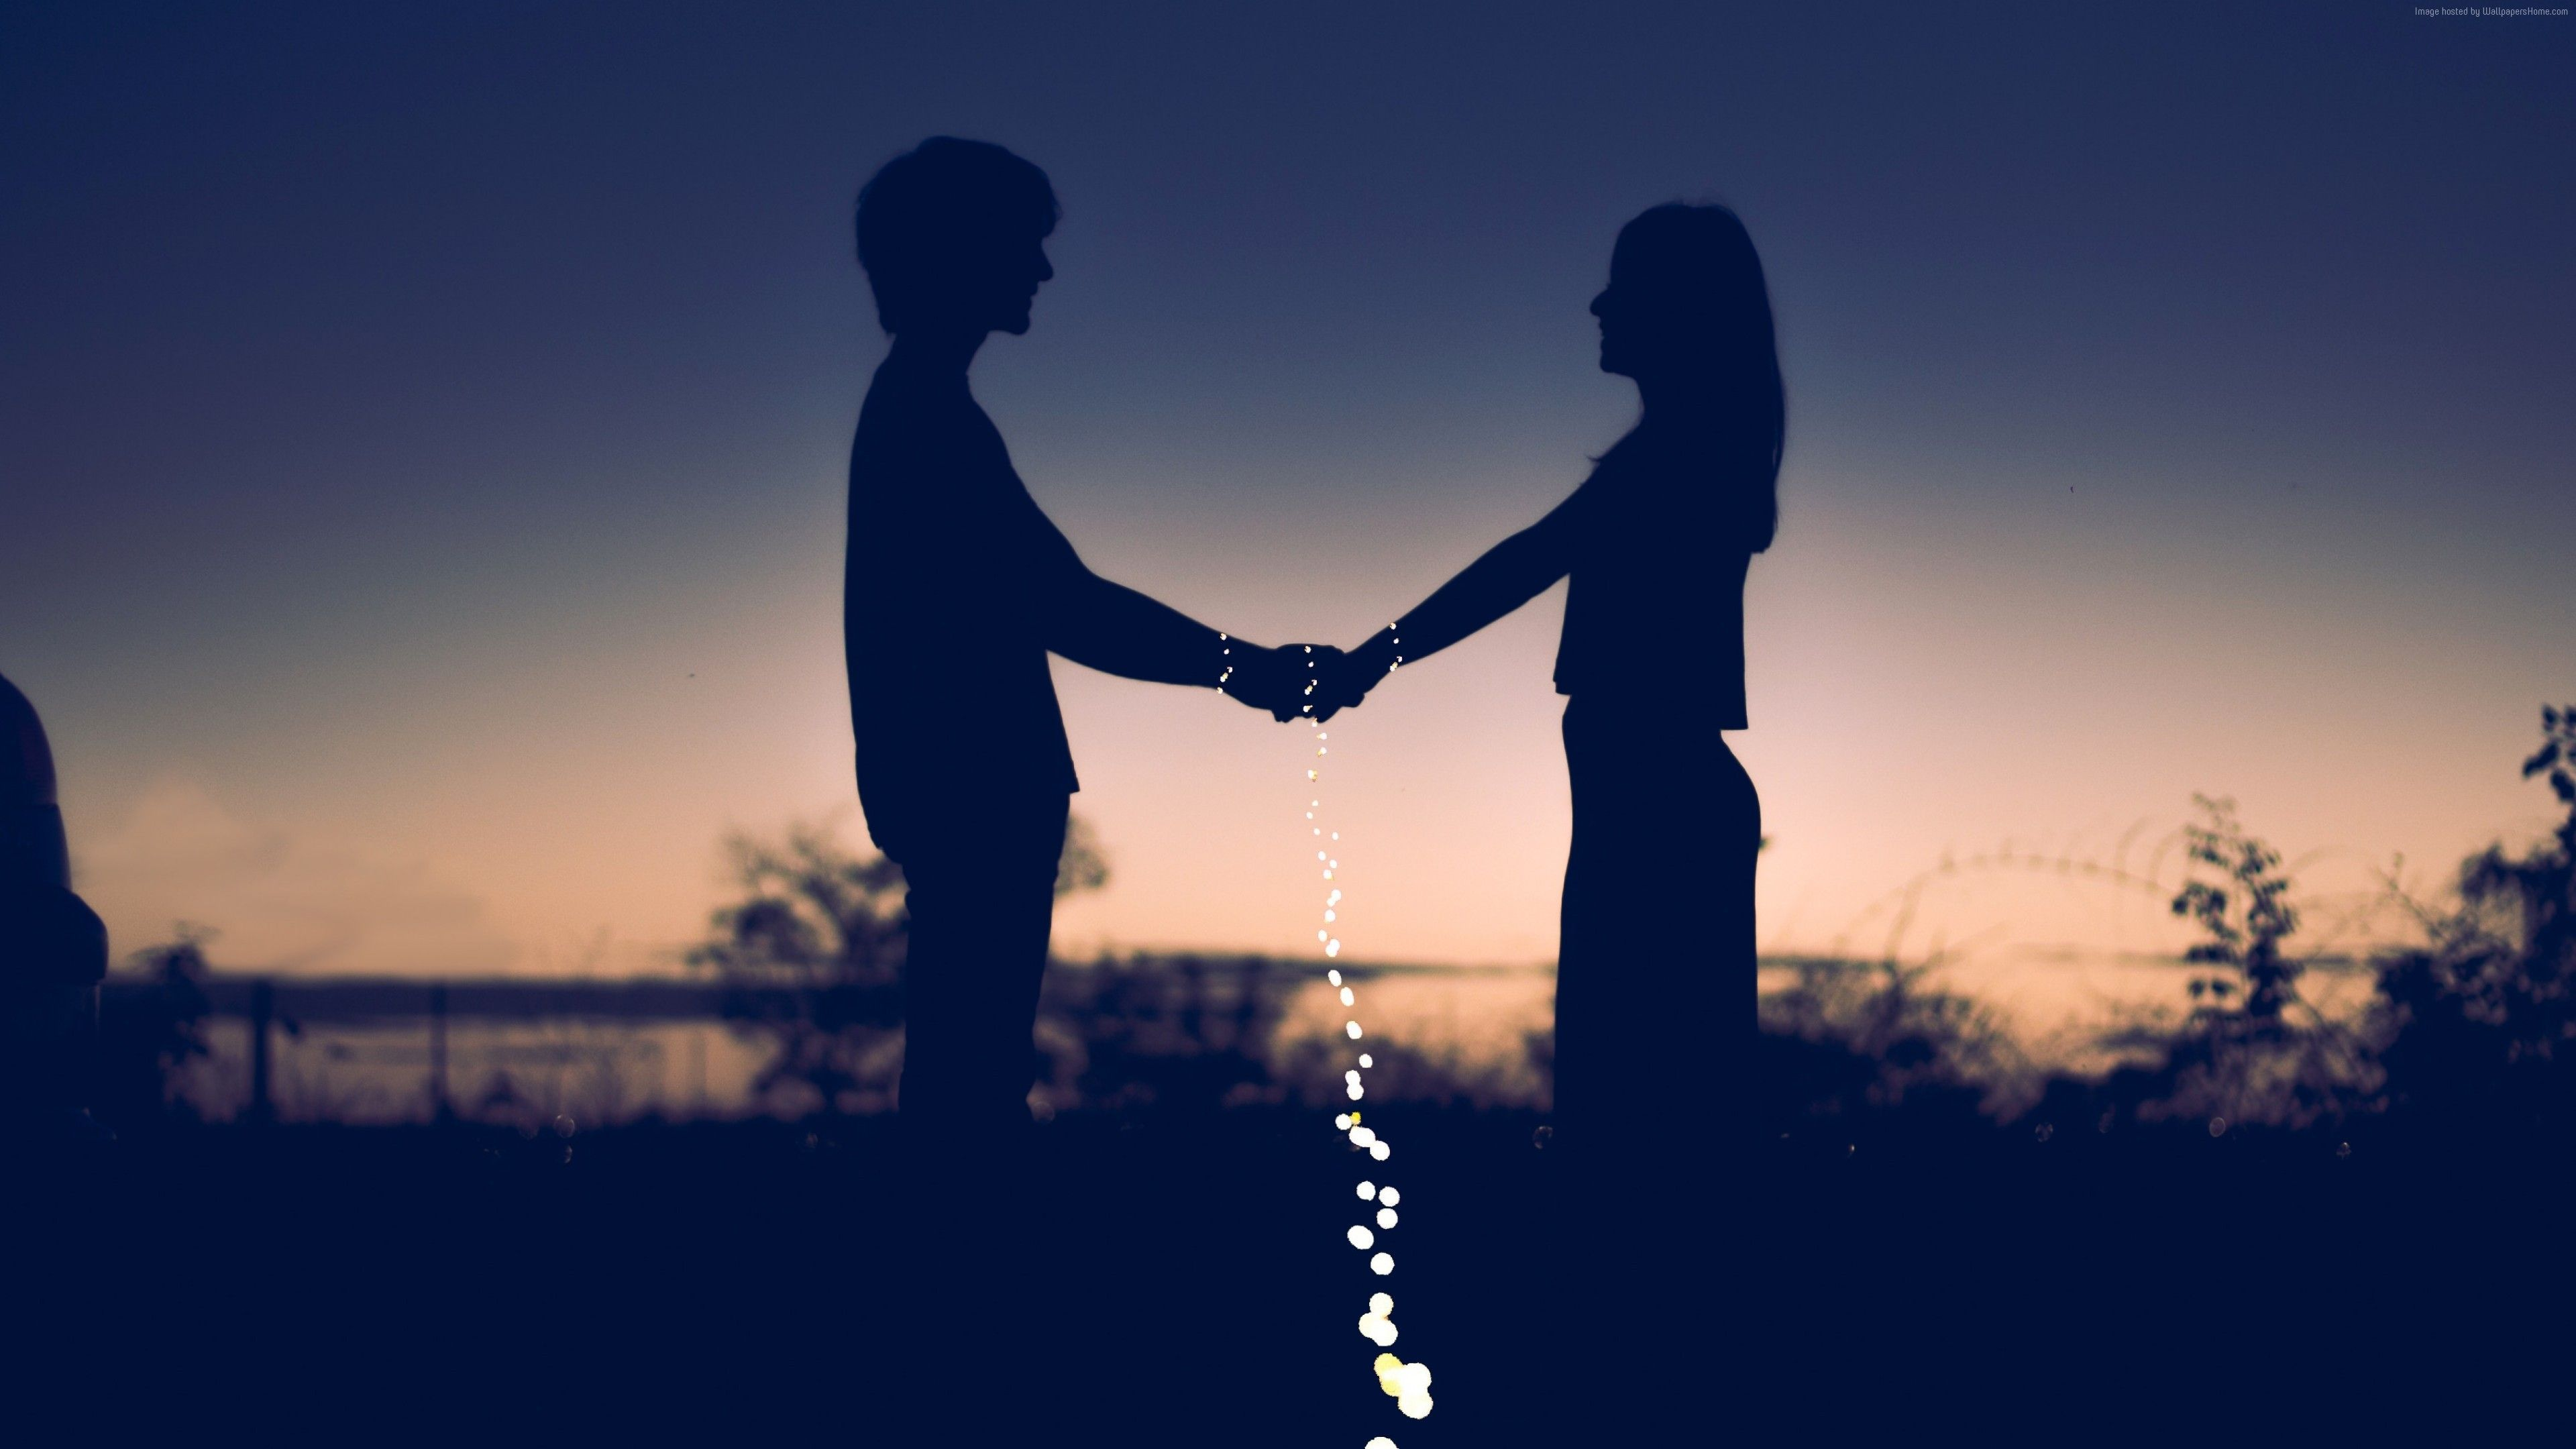 Love Image Http Livewallpaperswide Com Stock Love Image 91 10873 4k Couple Love Image Silhouette Photos Sunset Silhouette Love Images